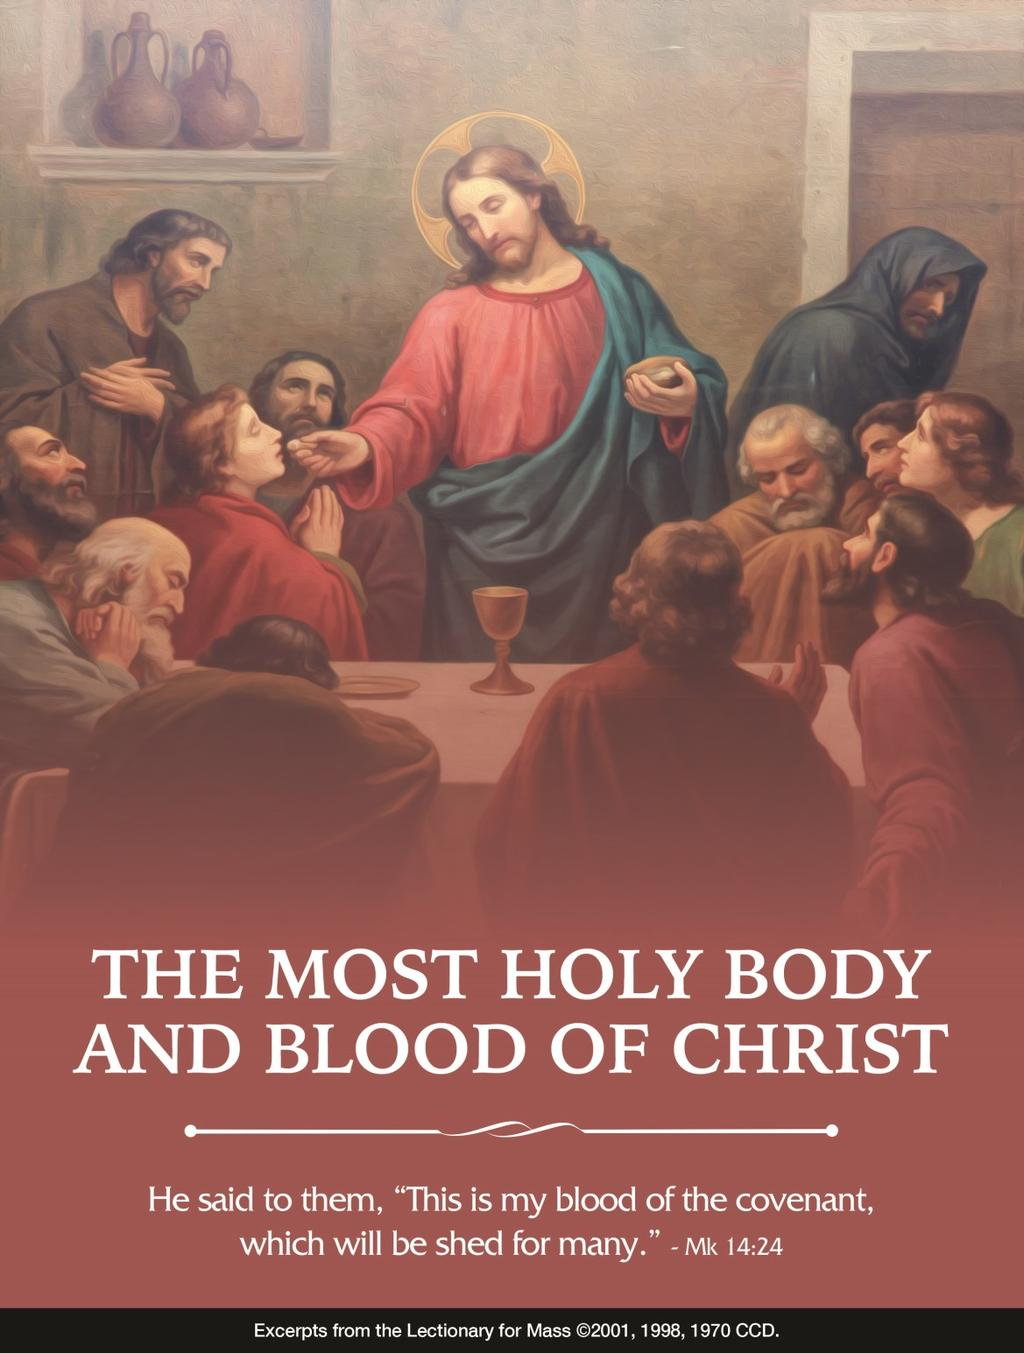 We have mentioned many times that all revolves around the Eucharist when we receive the real Body and Blood of the Lord.